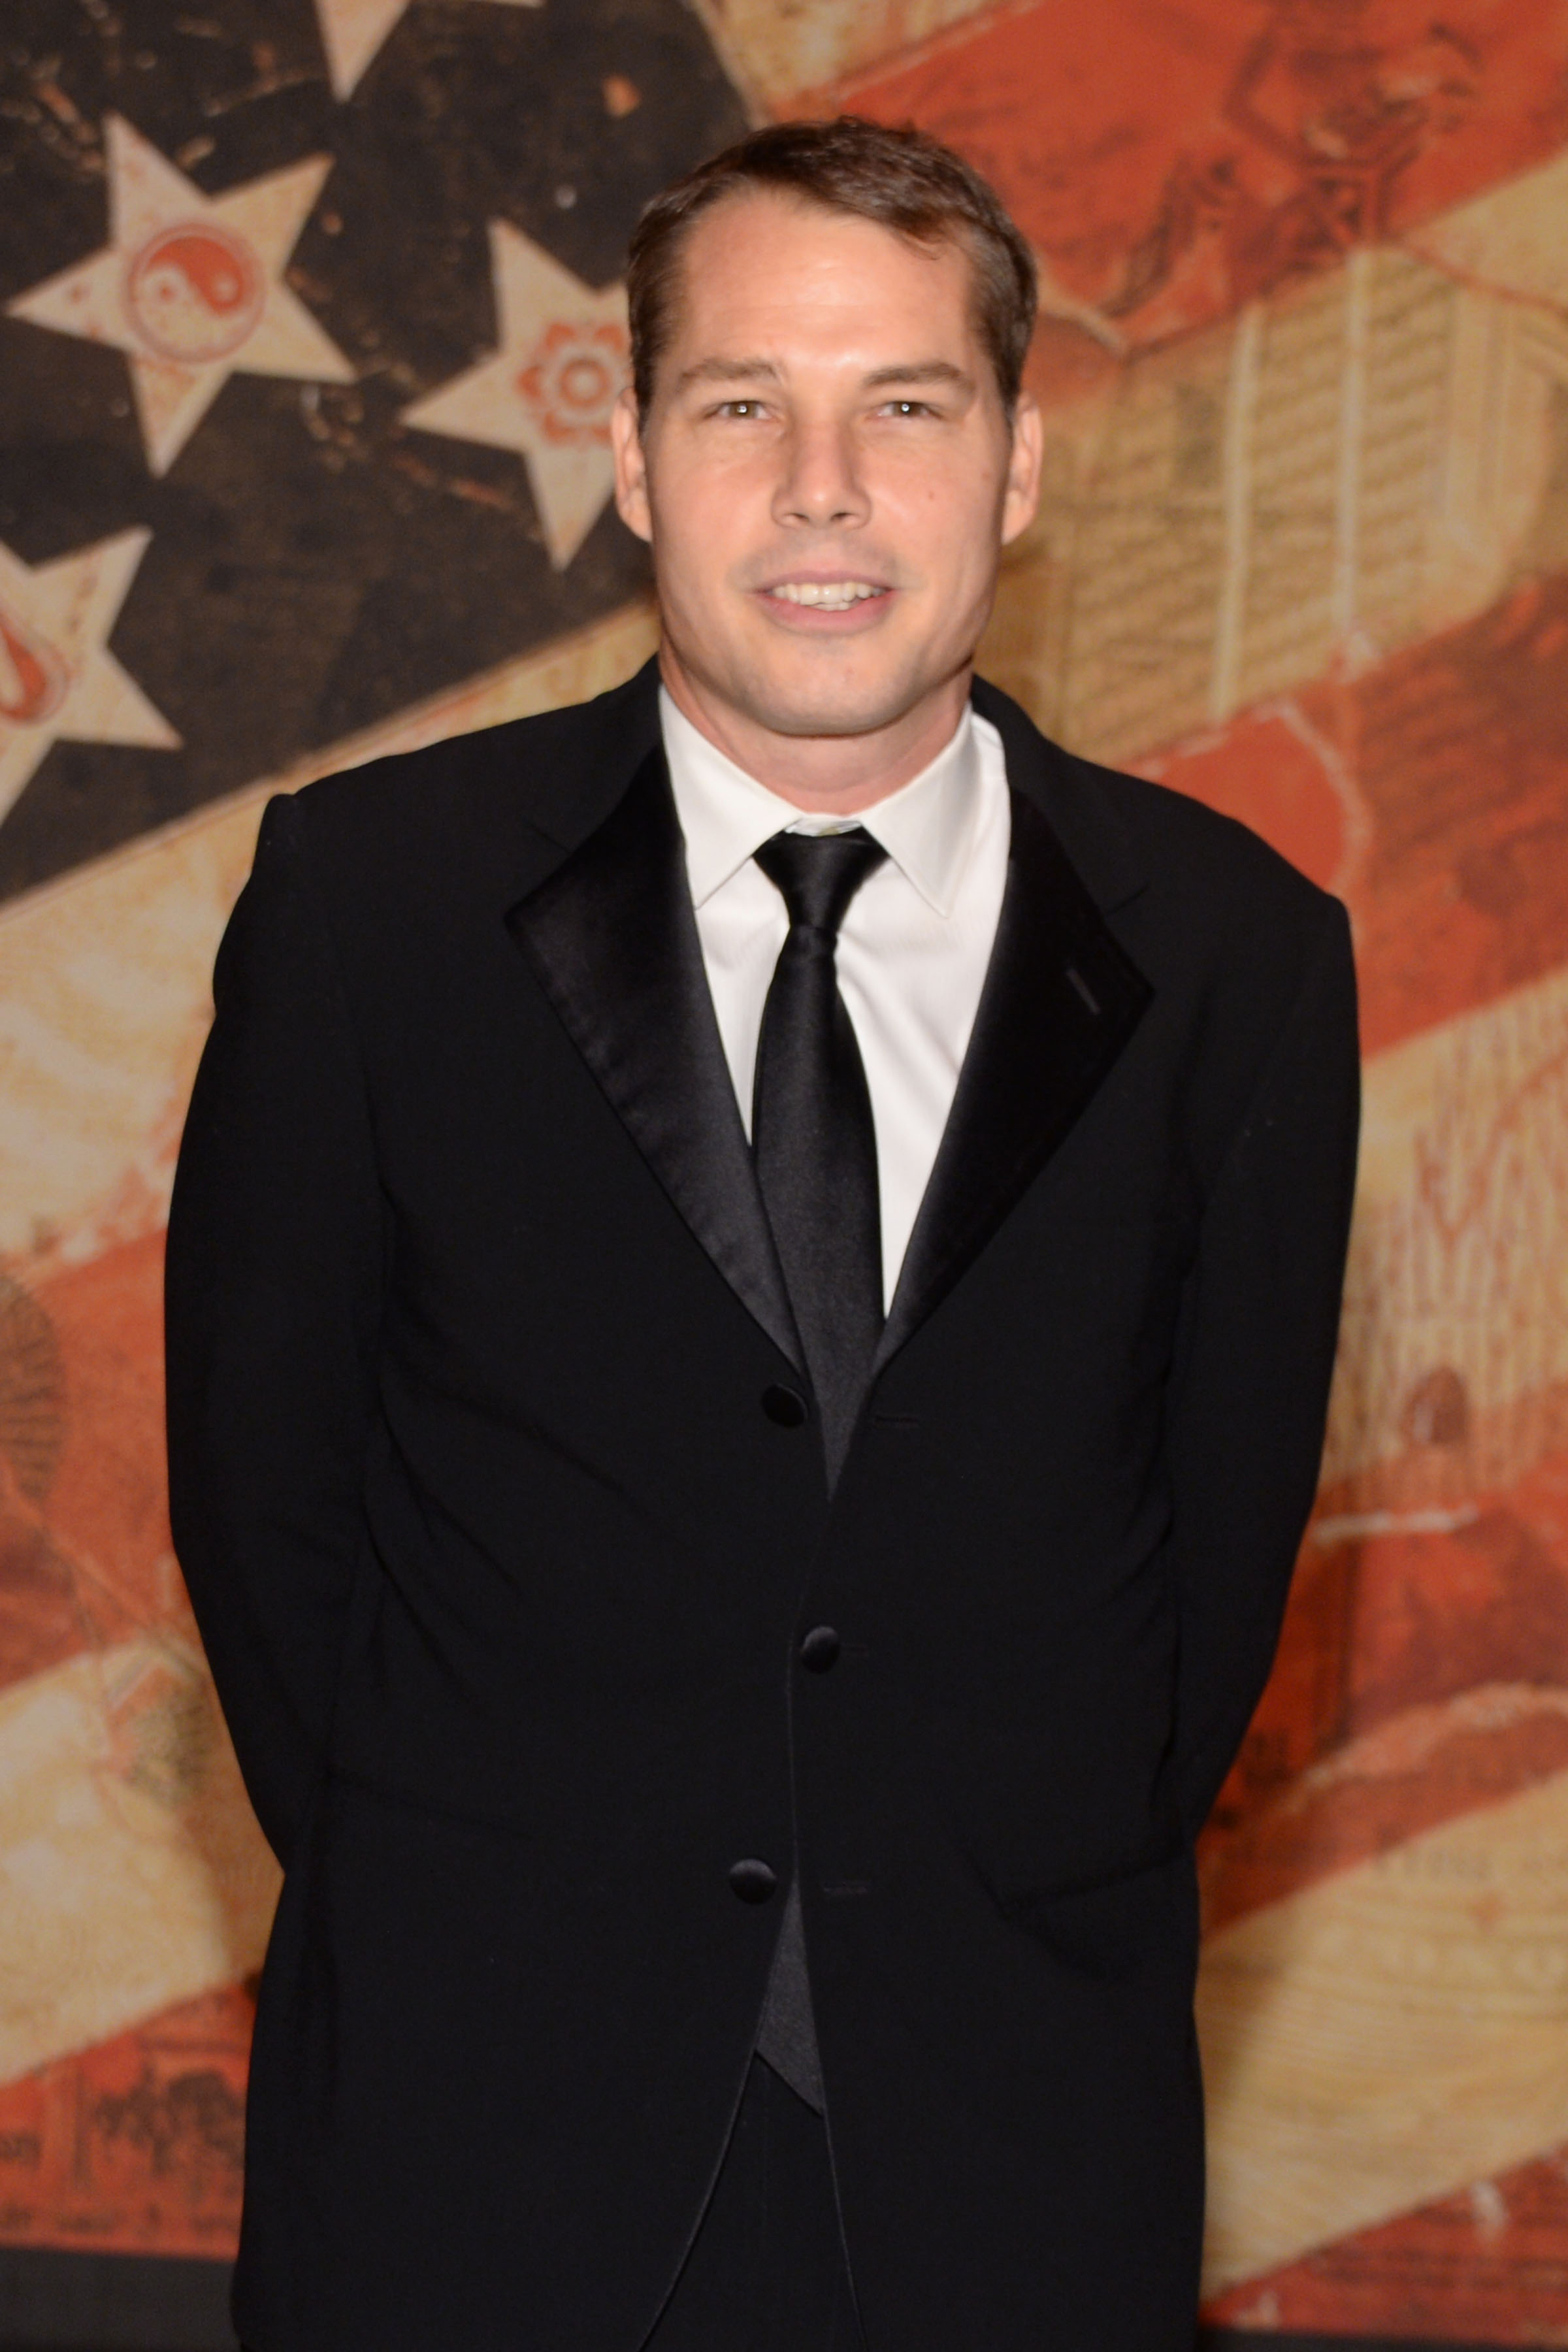 Shepard Fairey attends the 2014 National Arts Award held at Cipriani 42nd St, New York City on October 20, 2014.